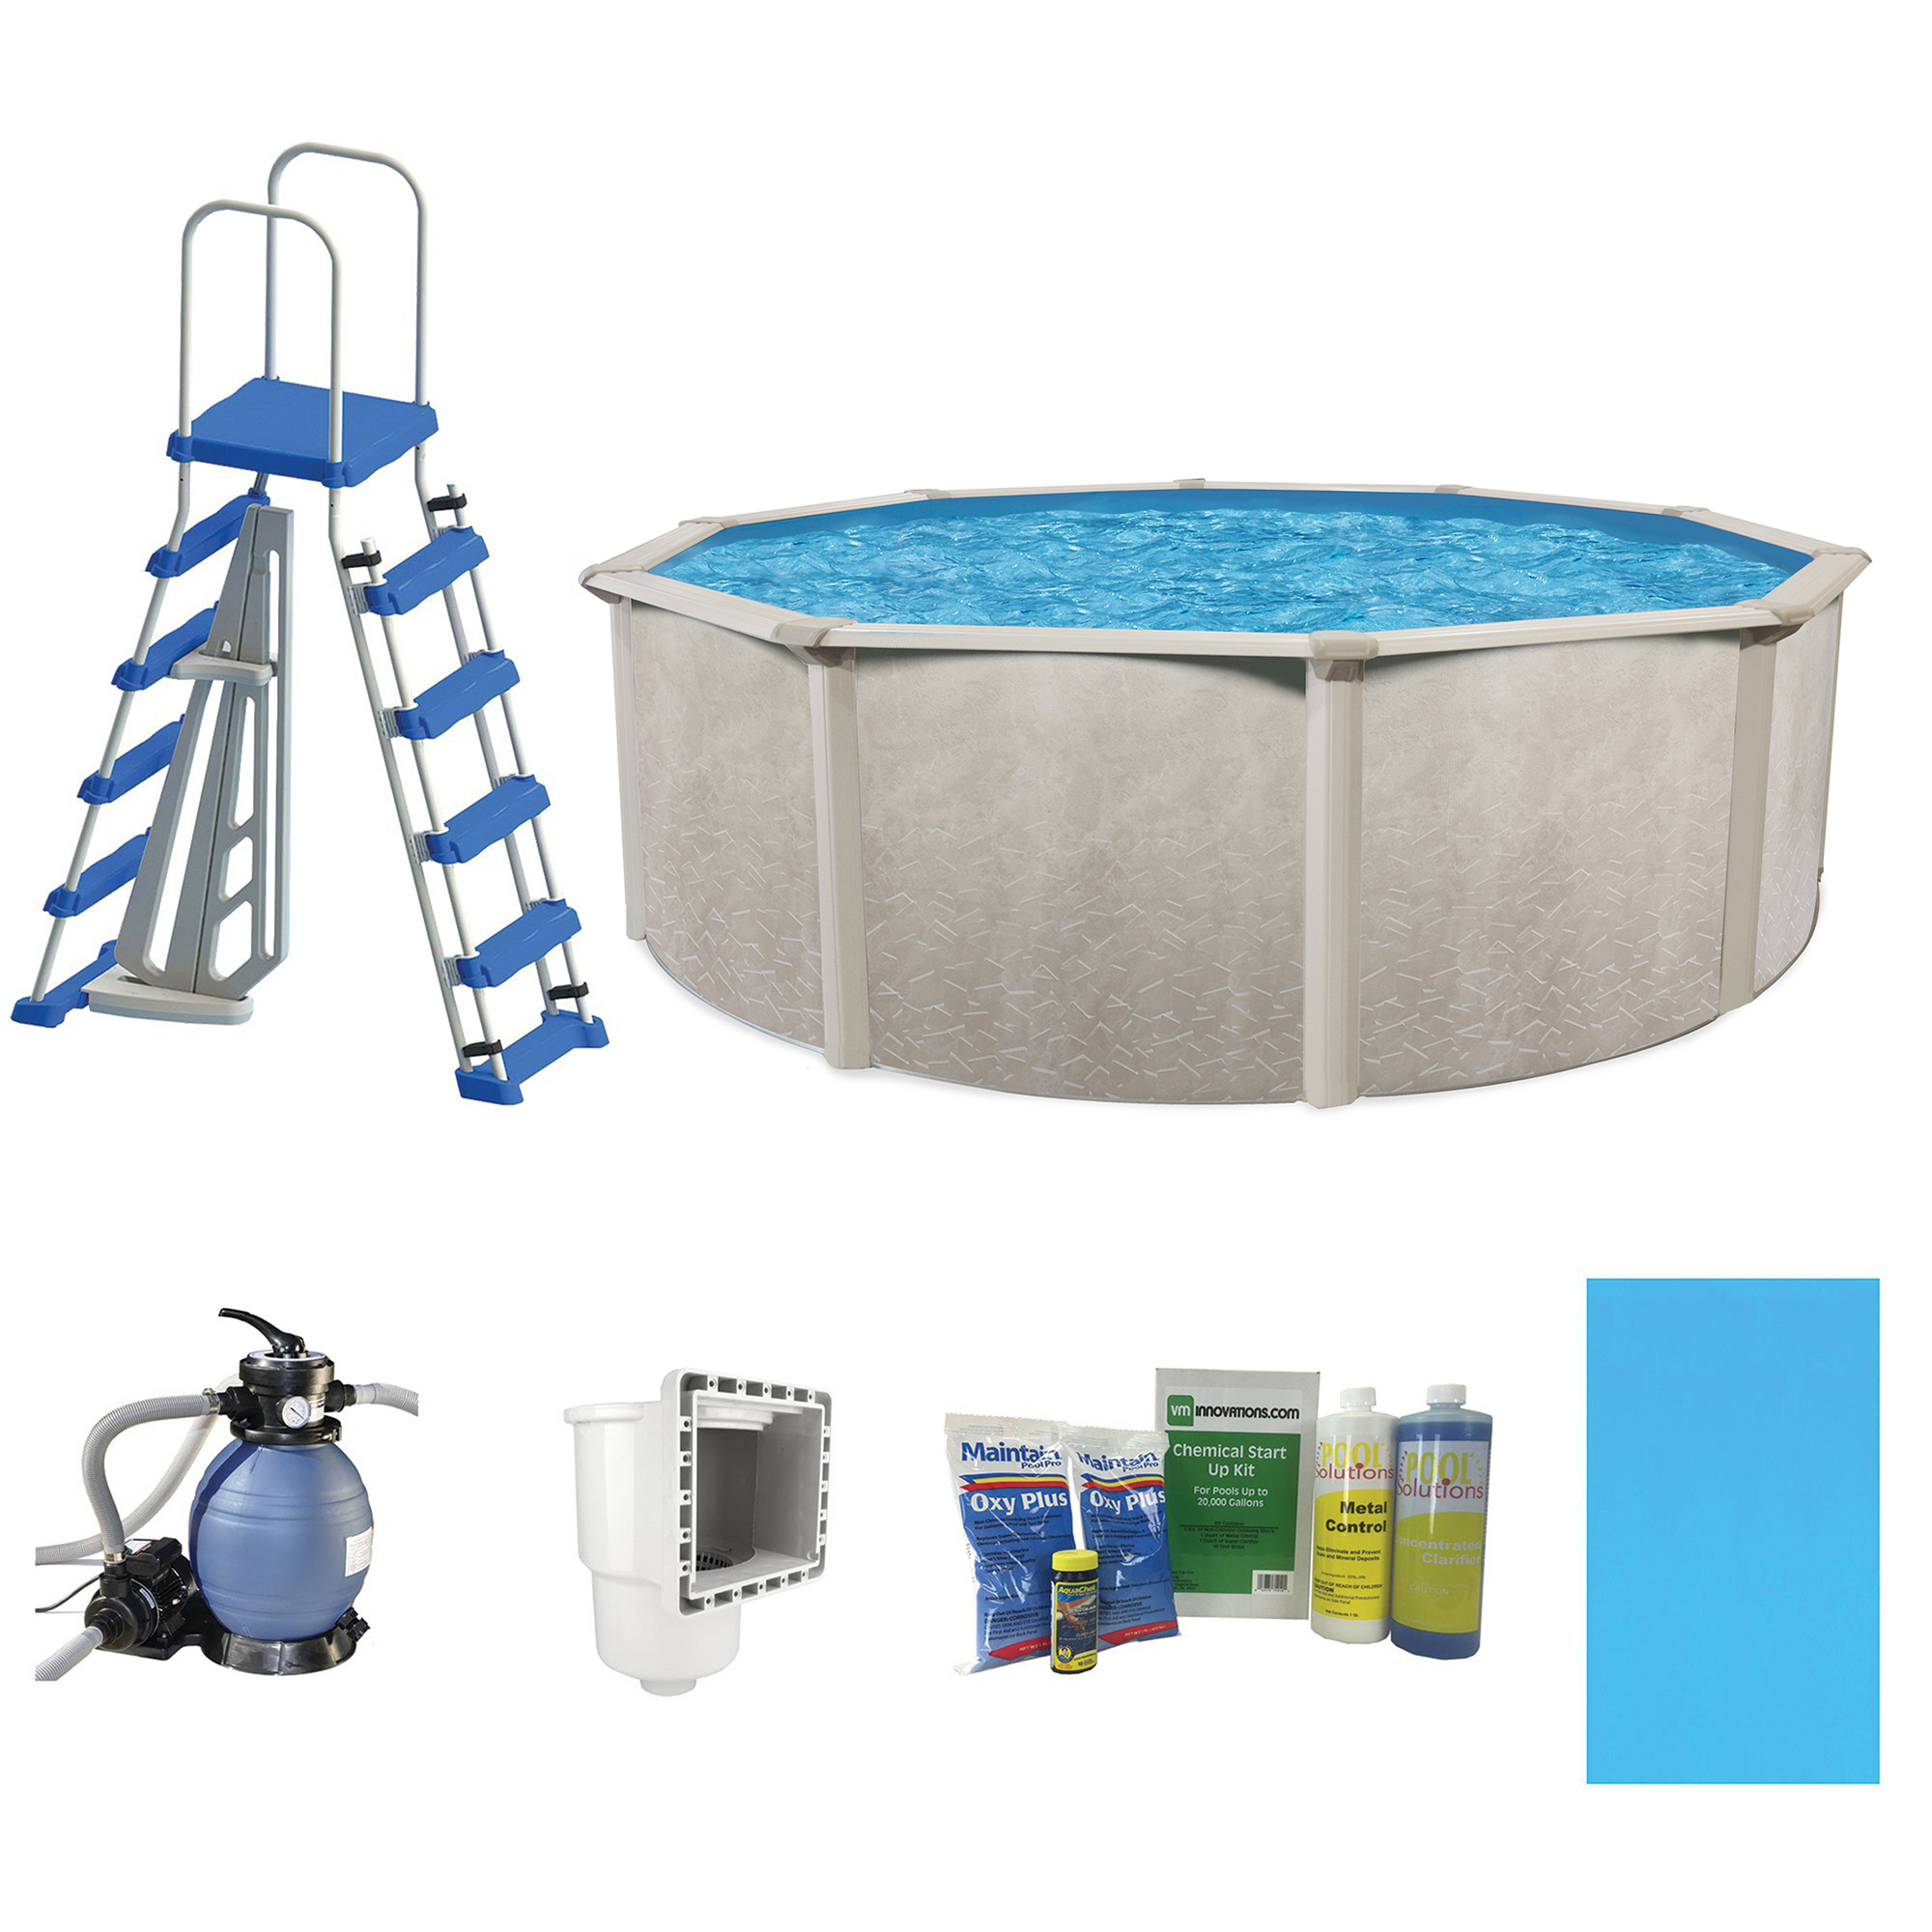 Cornelius pools phoenix 18 39 x 52 frame above ground pool kit with pump ladder ebay for Swimming pool pumps for above ground pools